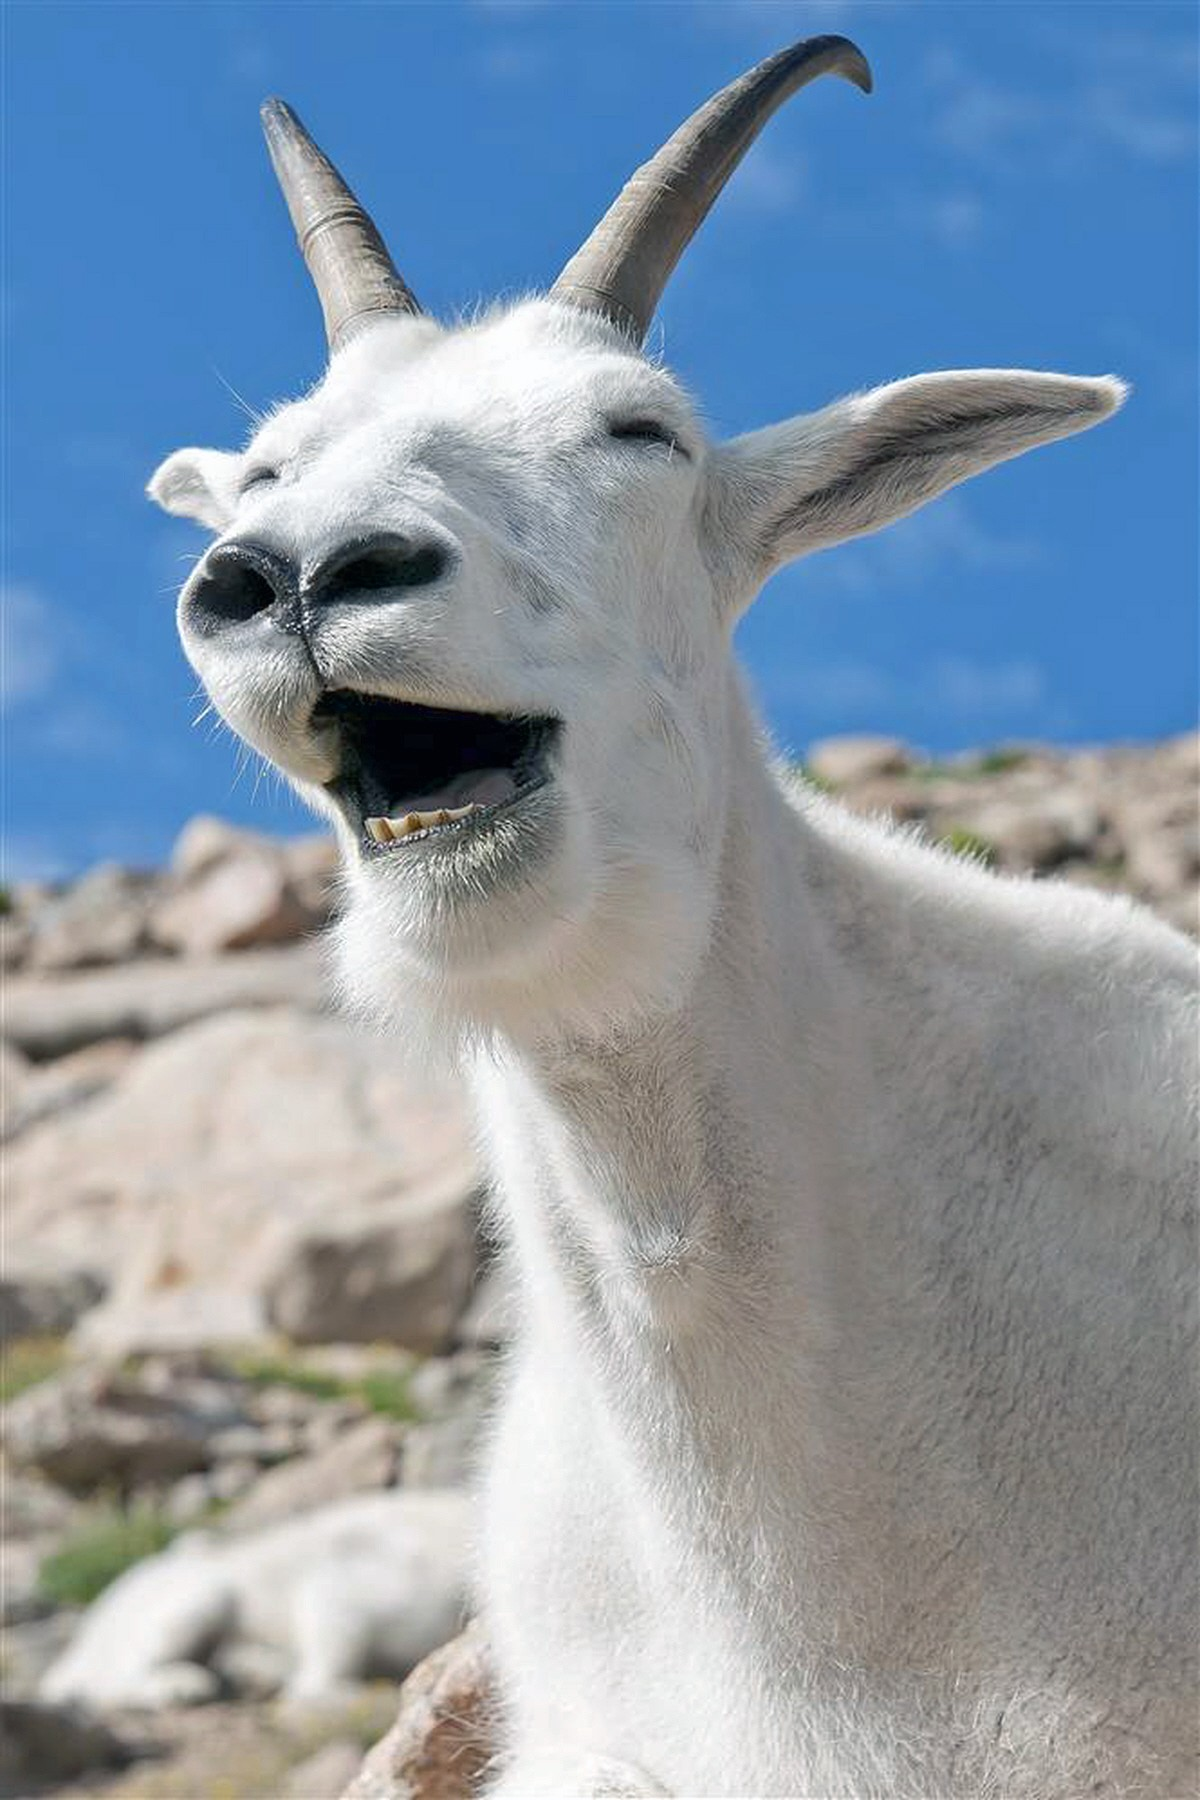 00.0b Laughing Animals. 08.06.12. Mountain Goat